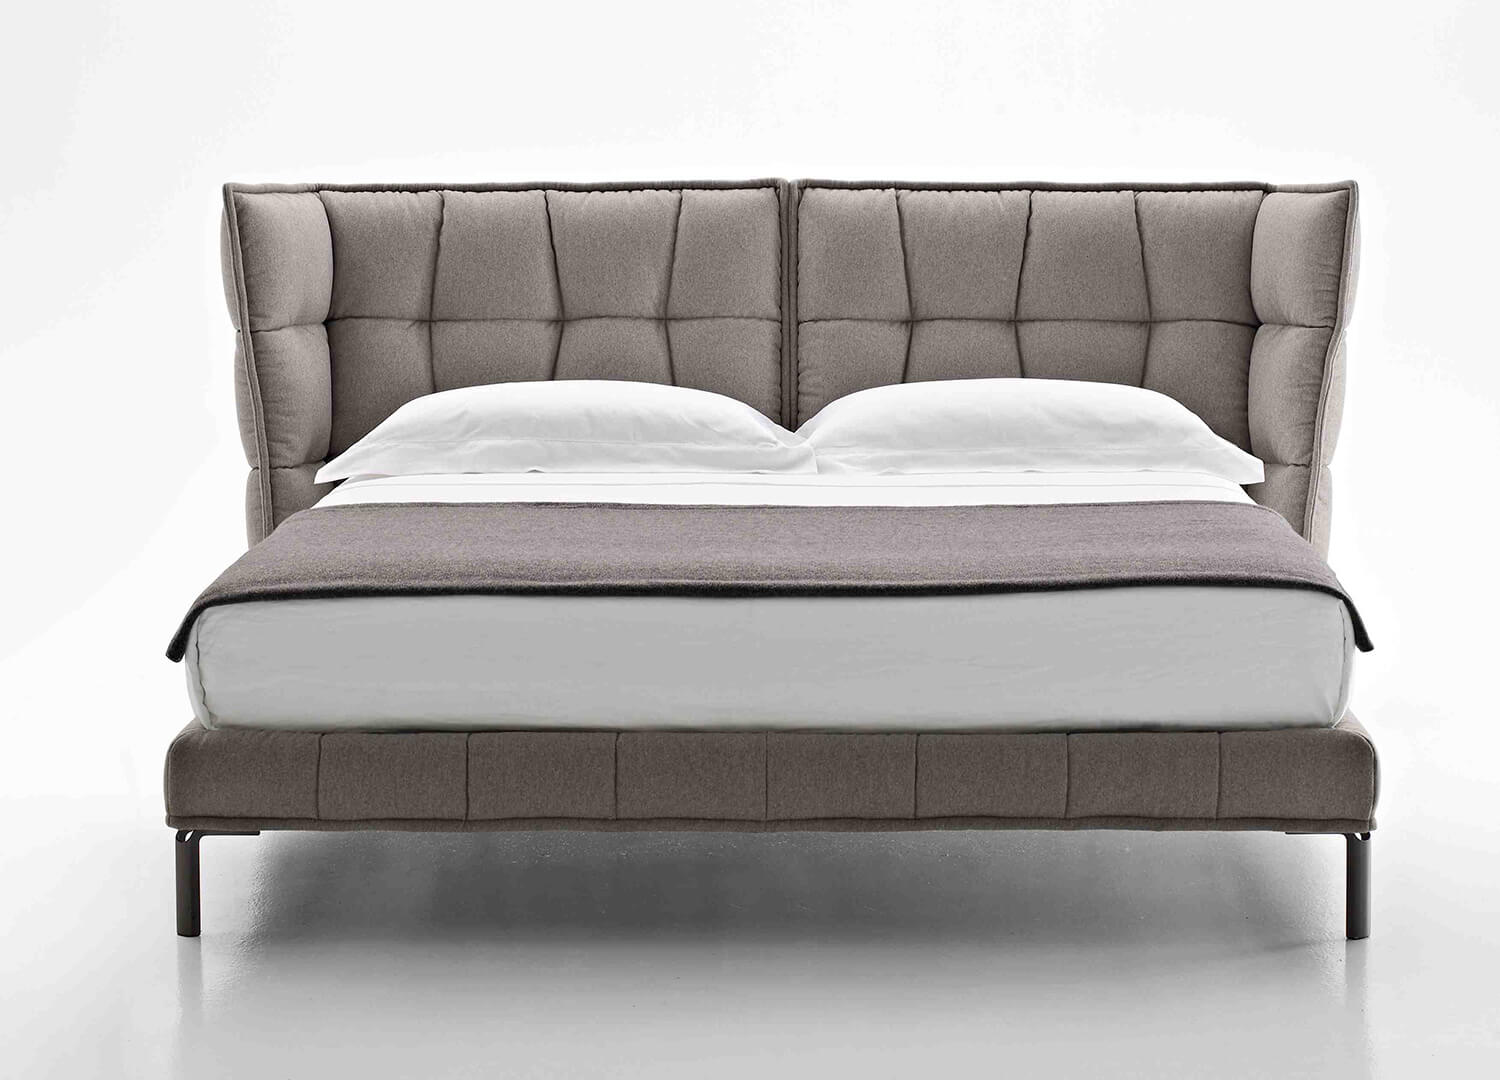 est living design directory husk bed